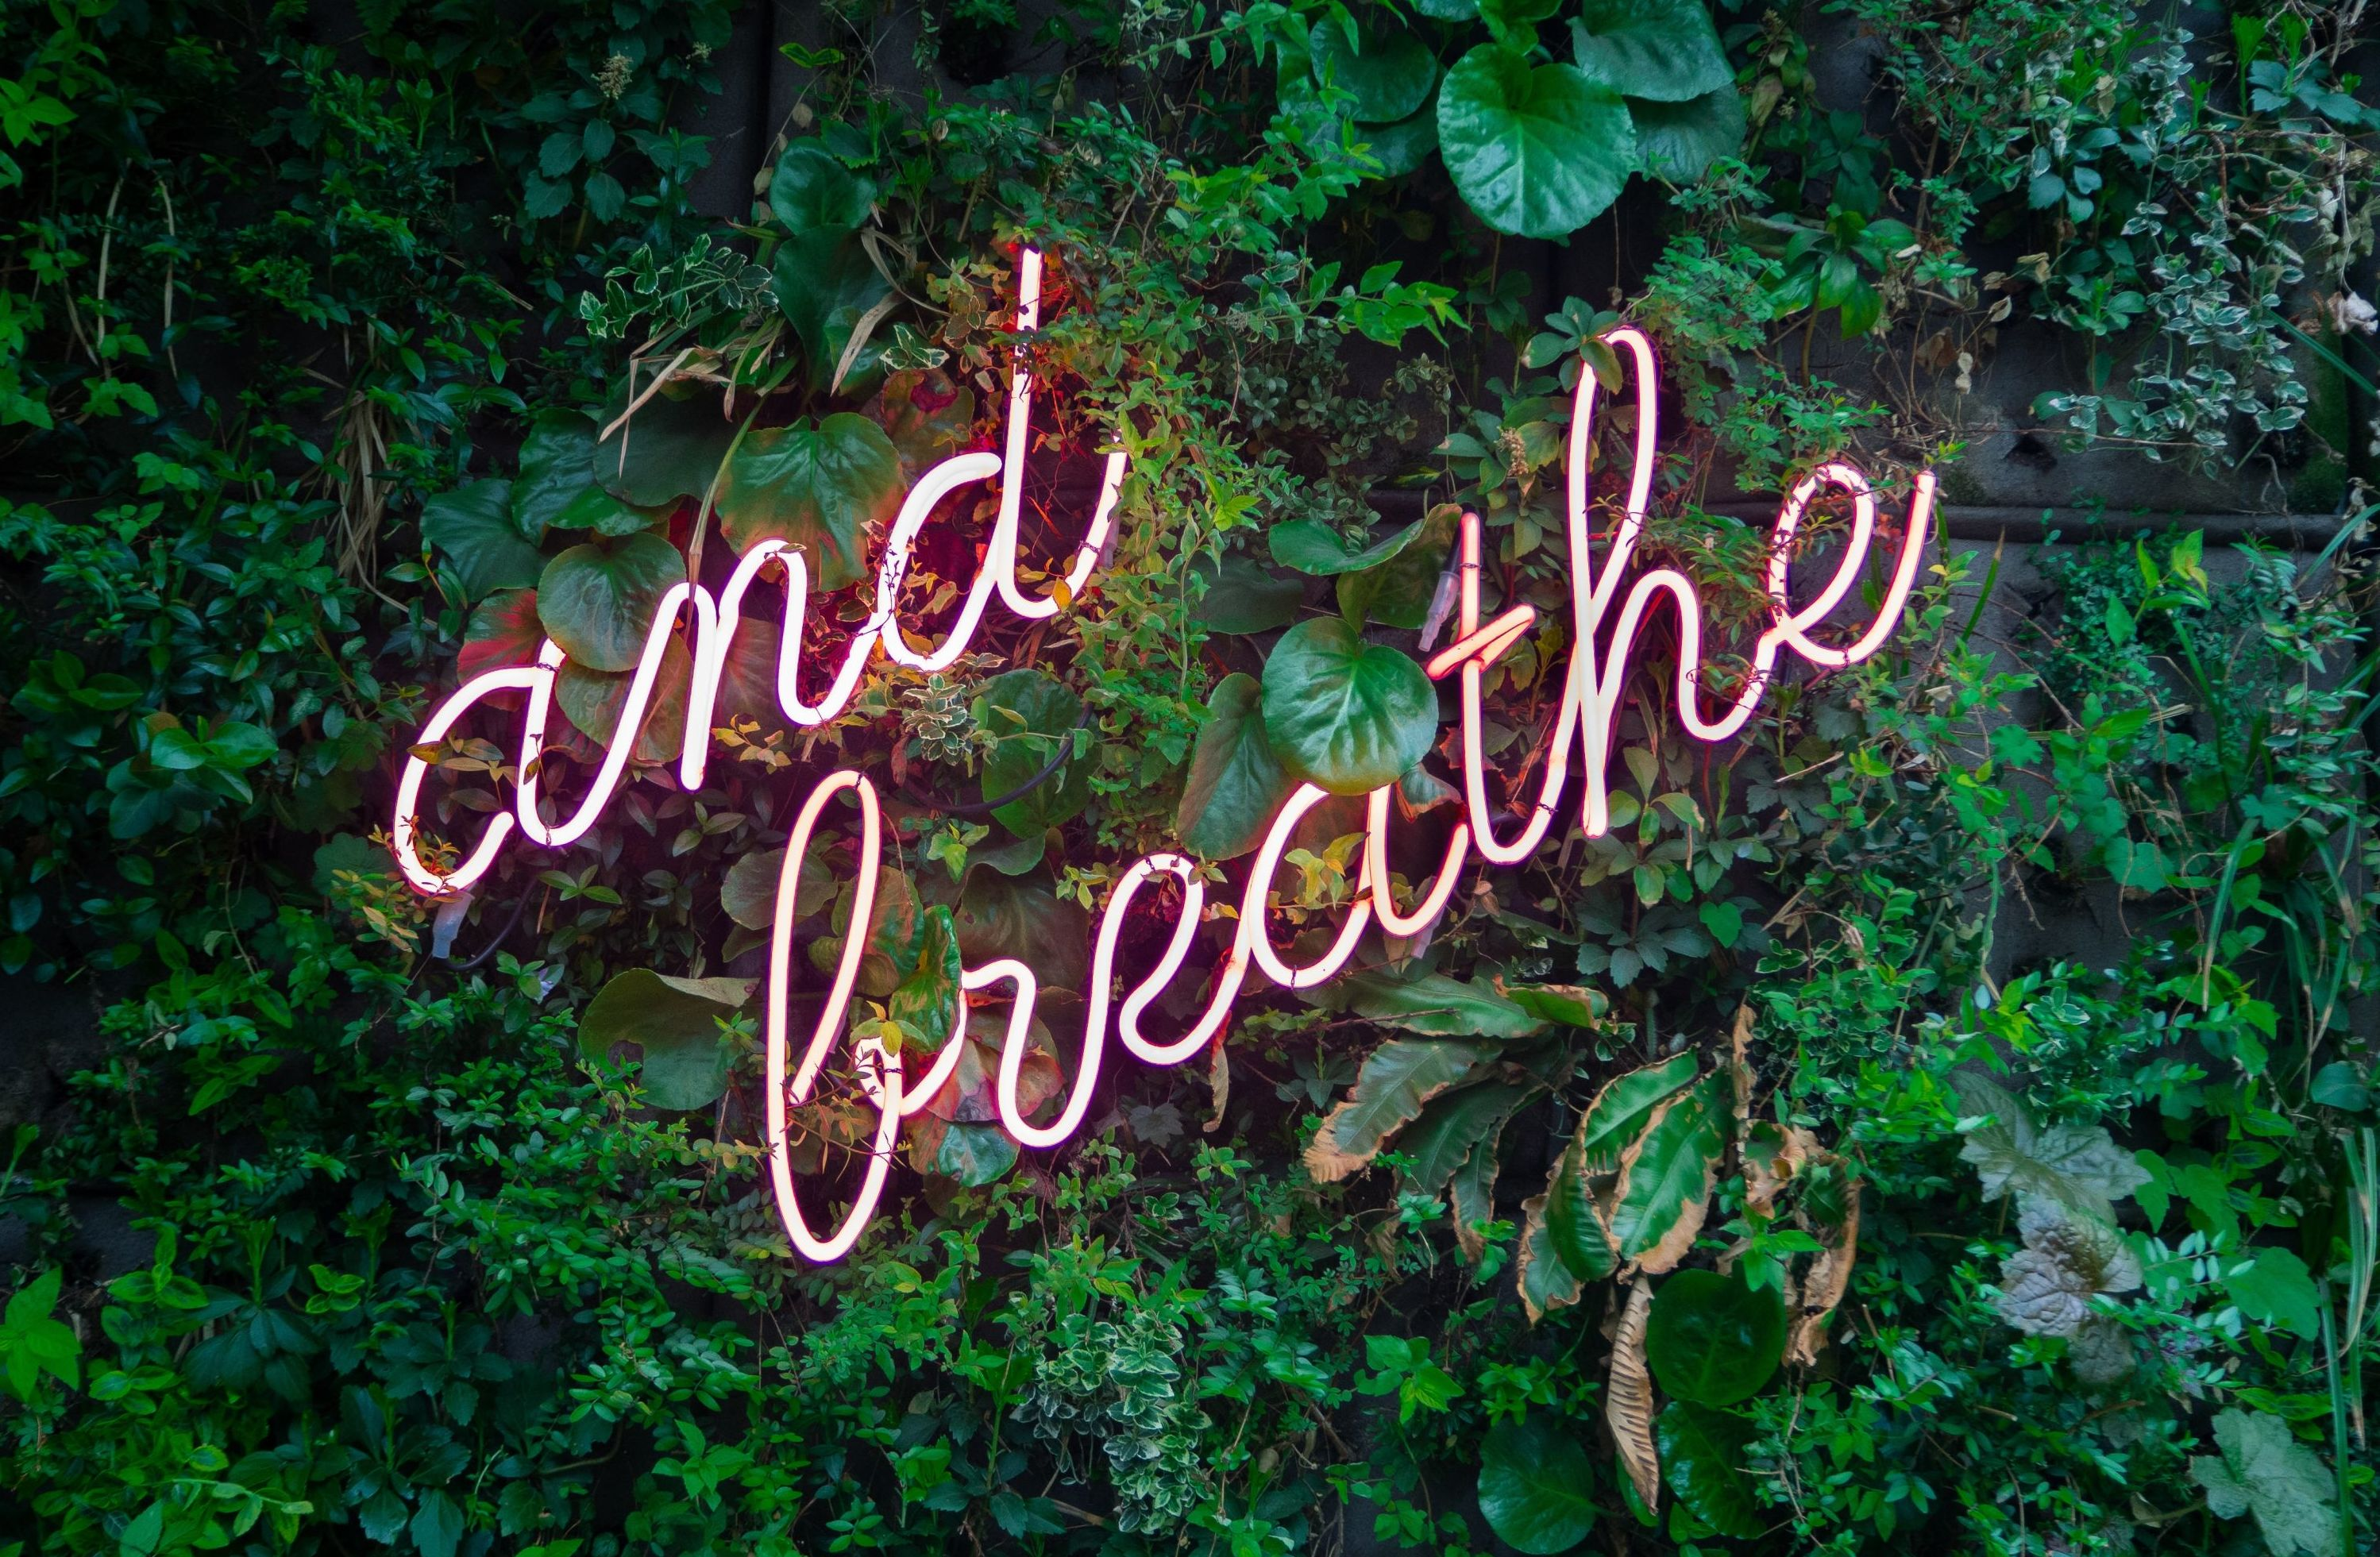 ...and breath